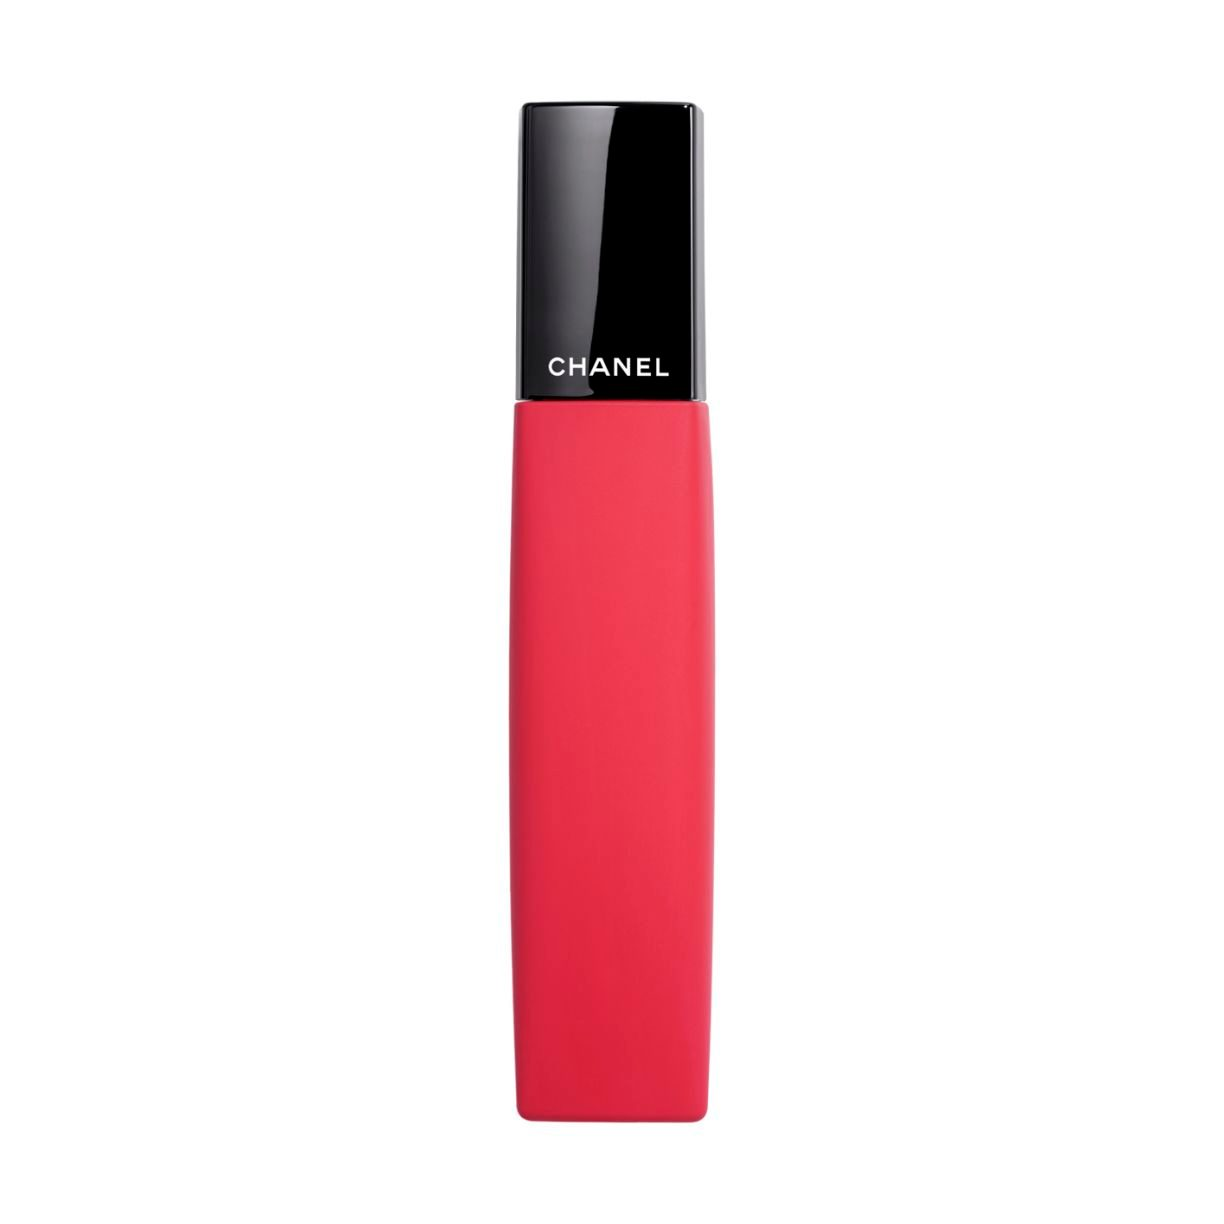 ROUGE ALLURE LIQUID POWDER LIQUID MATTE LIP COLOUR BLURRED EFFECT 956 - INVINCIBLE